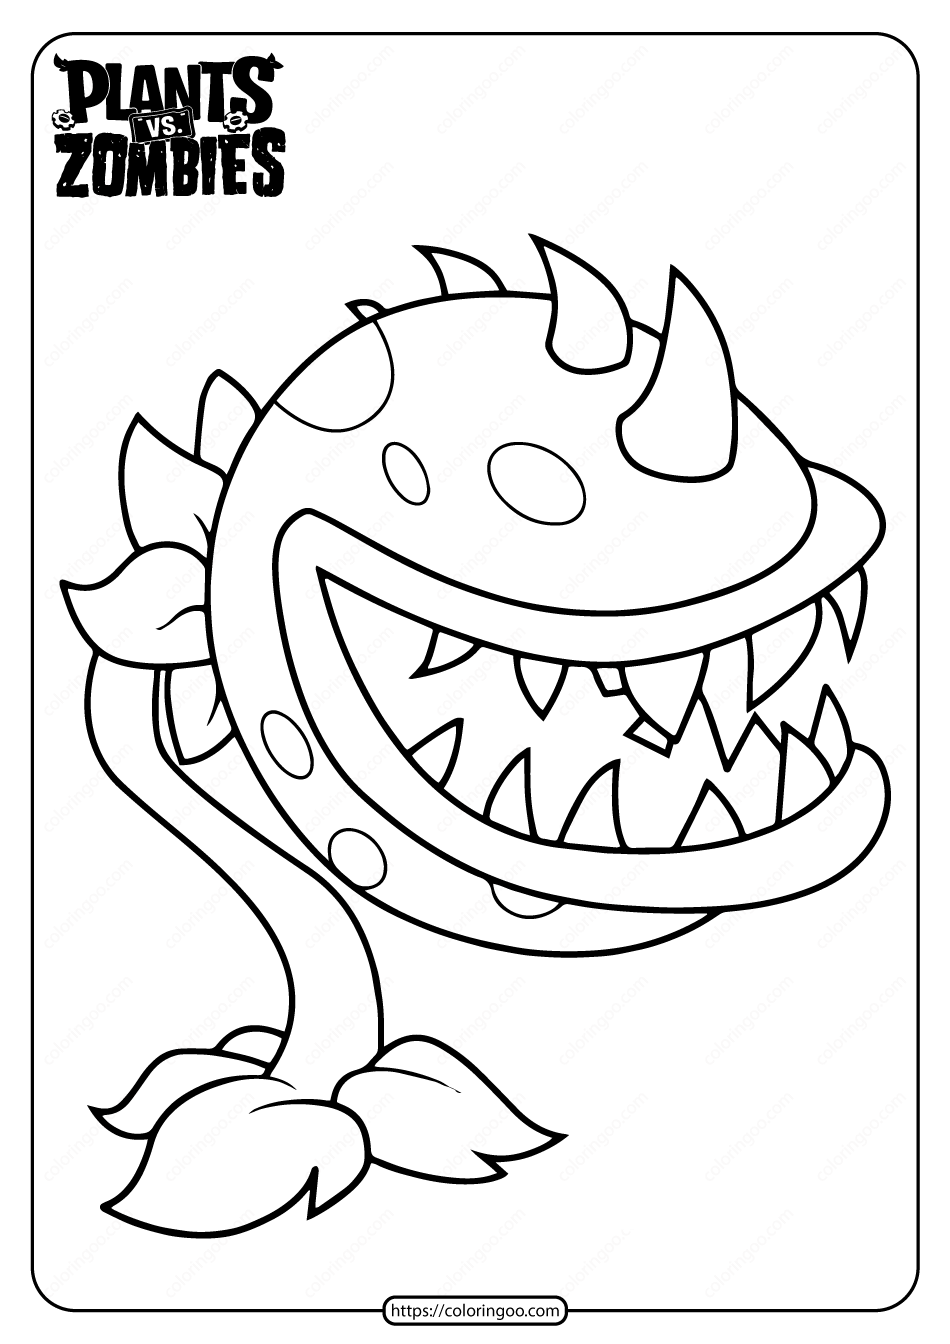 Plants Vs Zombies Chomper Pdf Coloring Page Zombie Drawings Coloring Pages Super Mario Coloring Pages